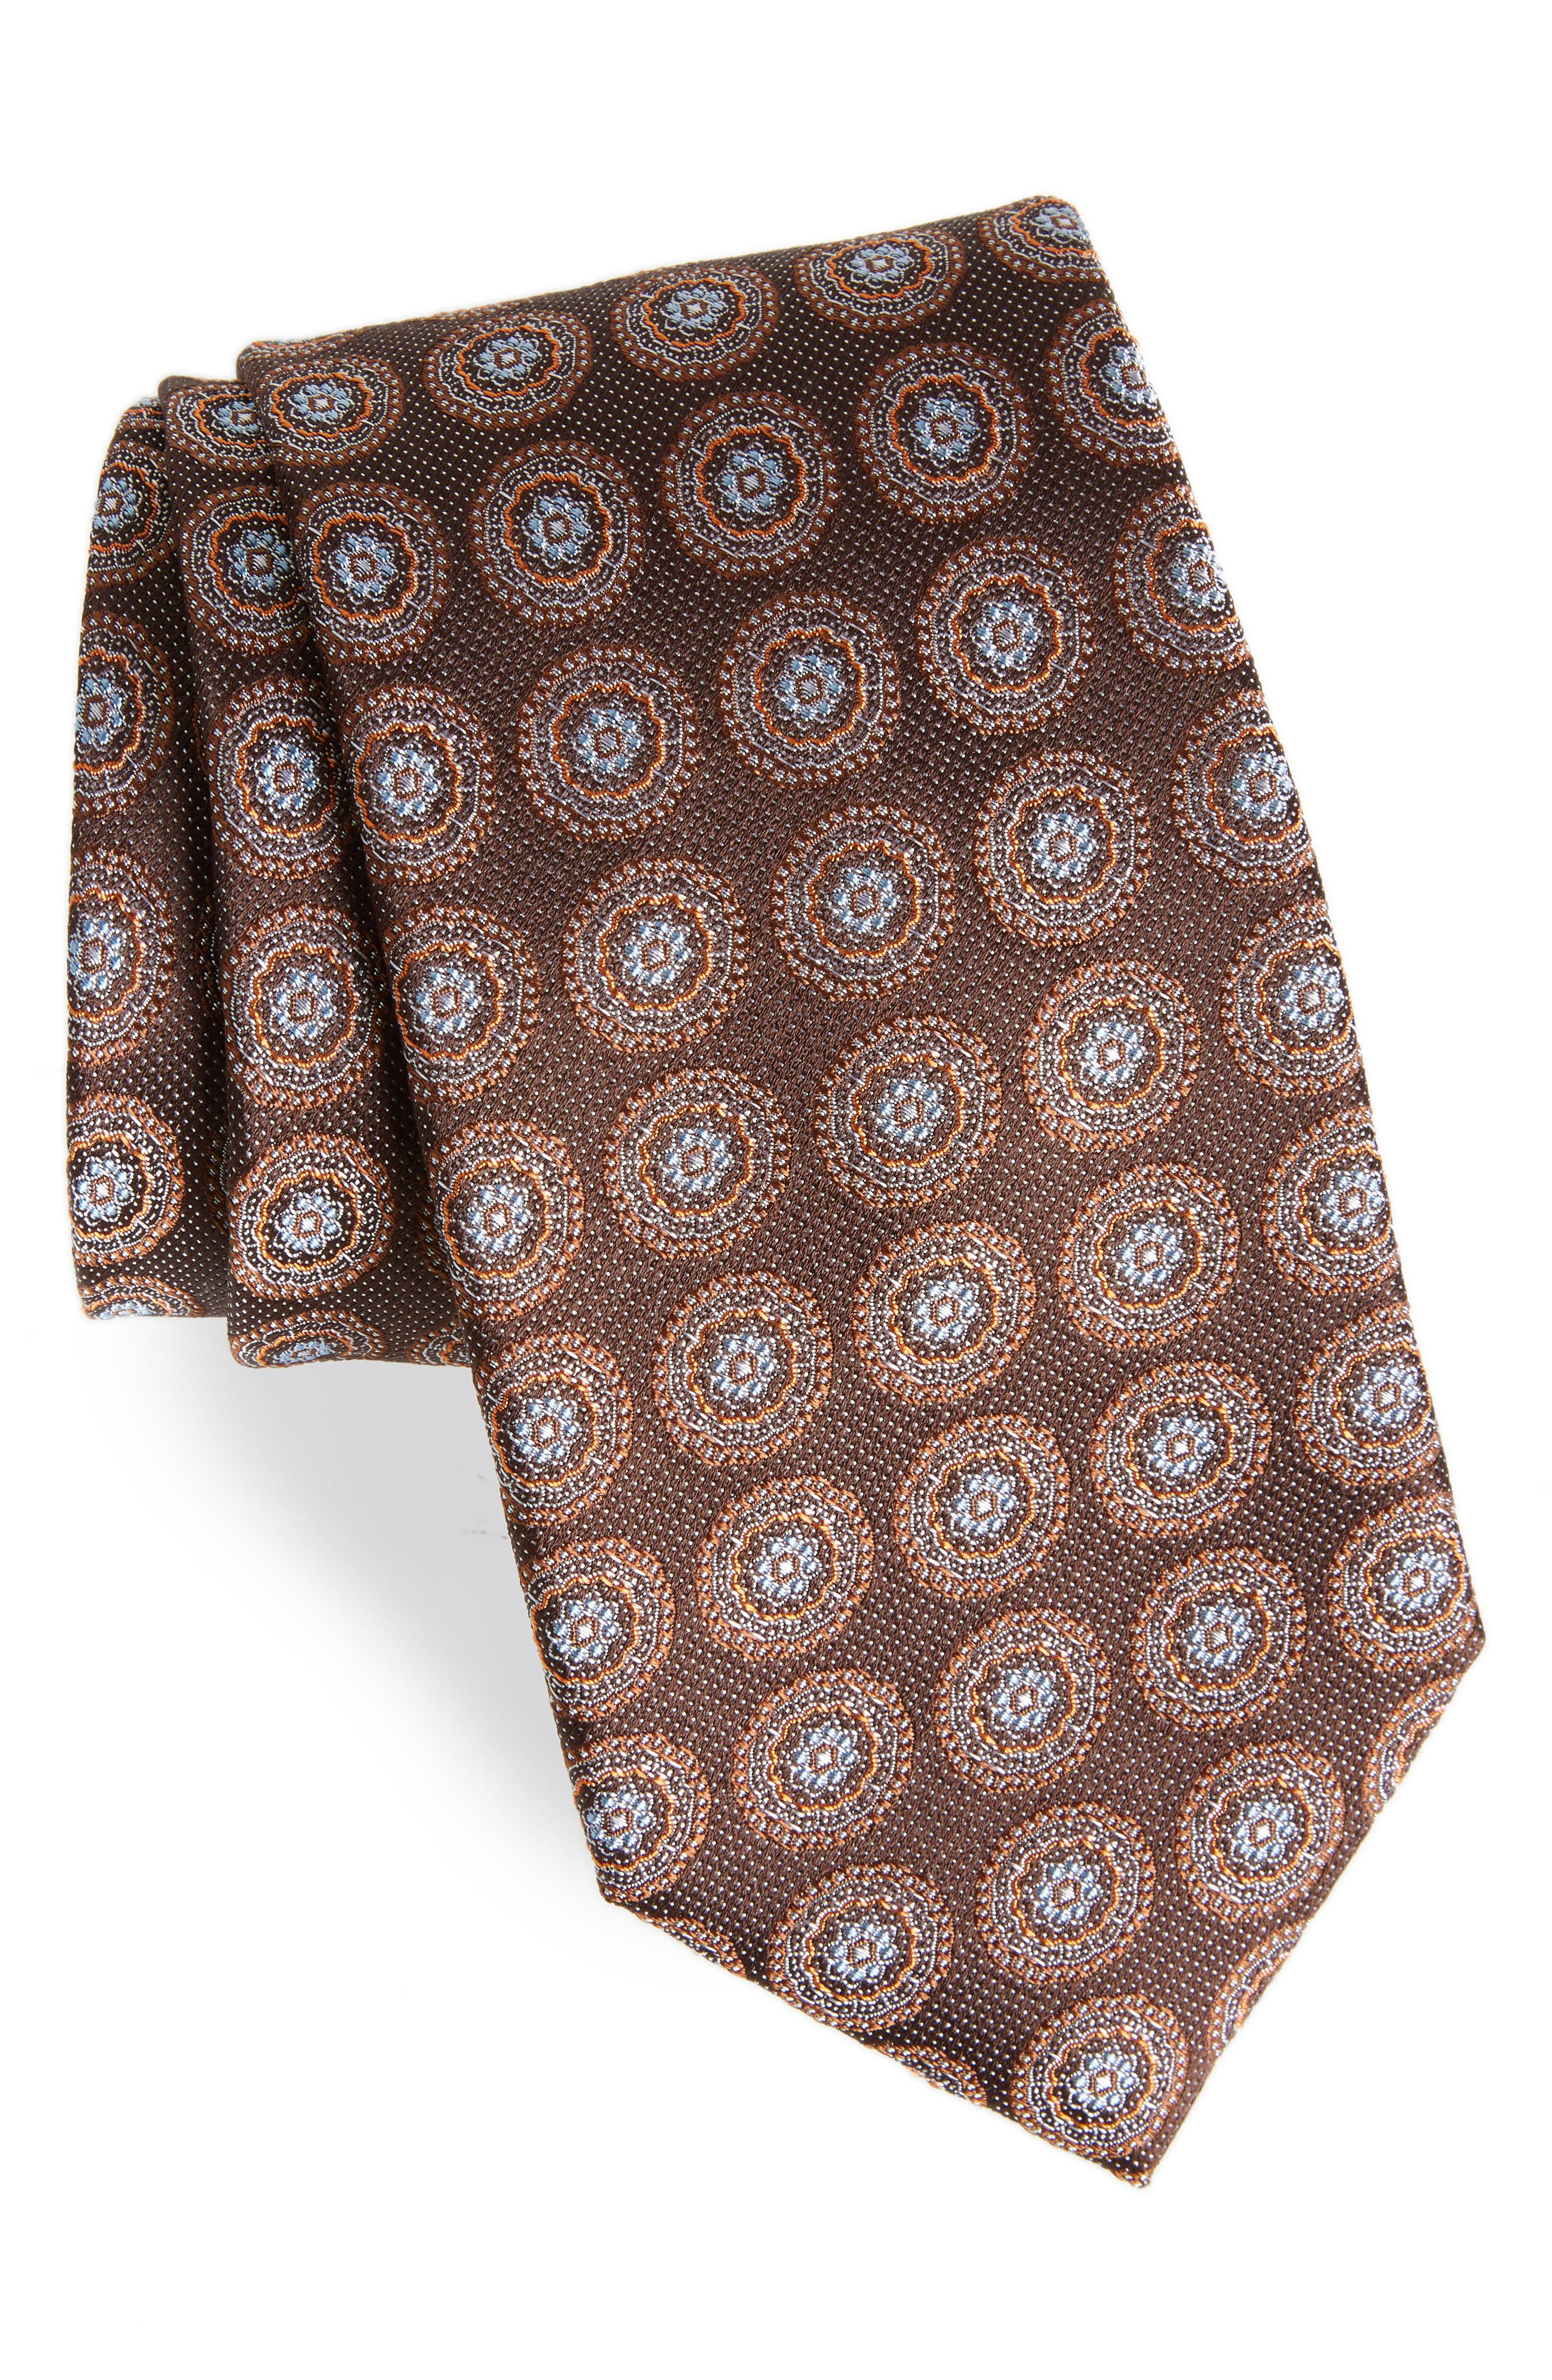 Pinpoint Medallion Silk Tie,                         Main,                         color, 200